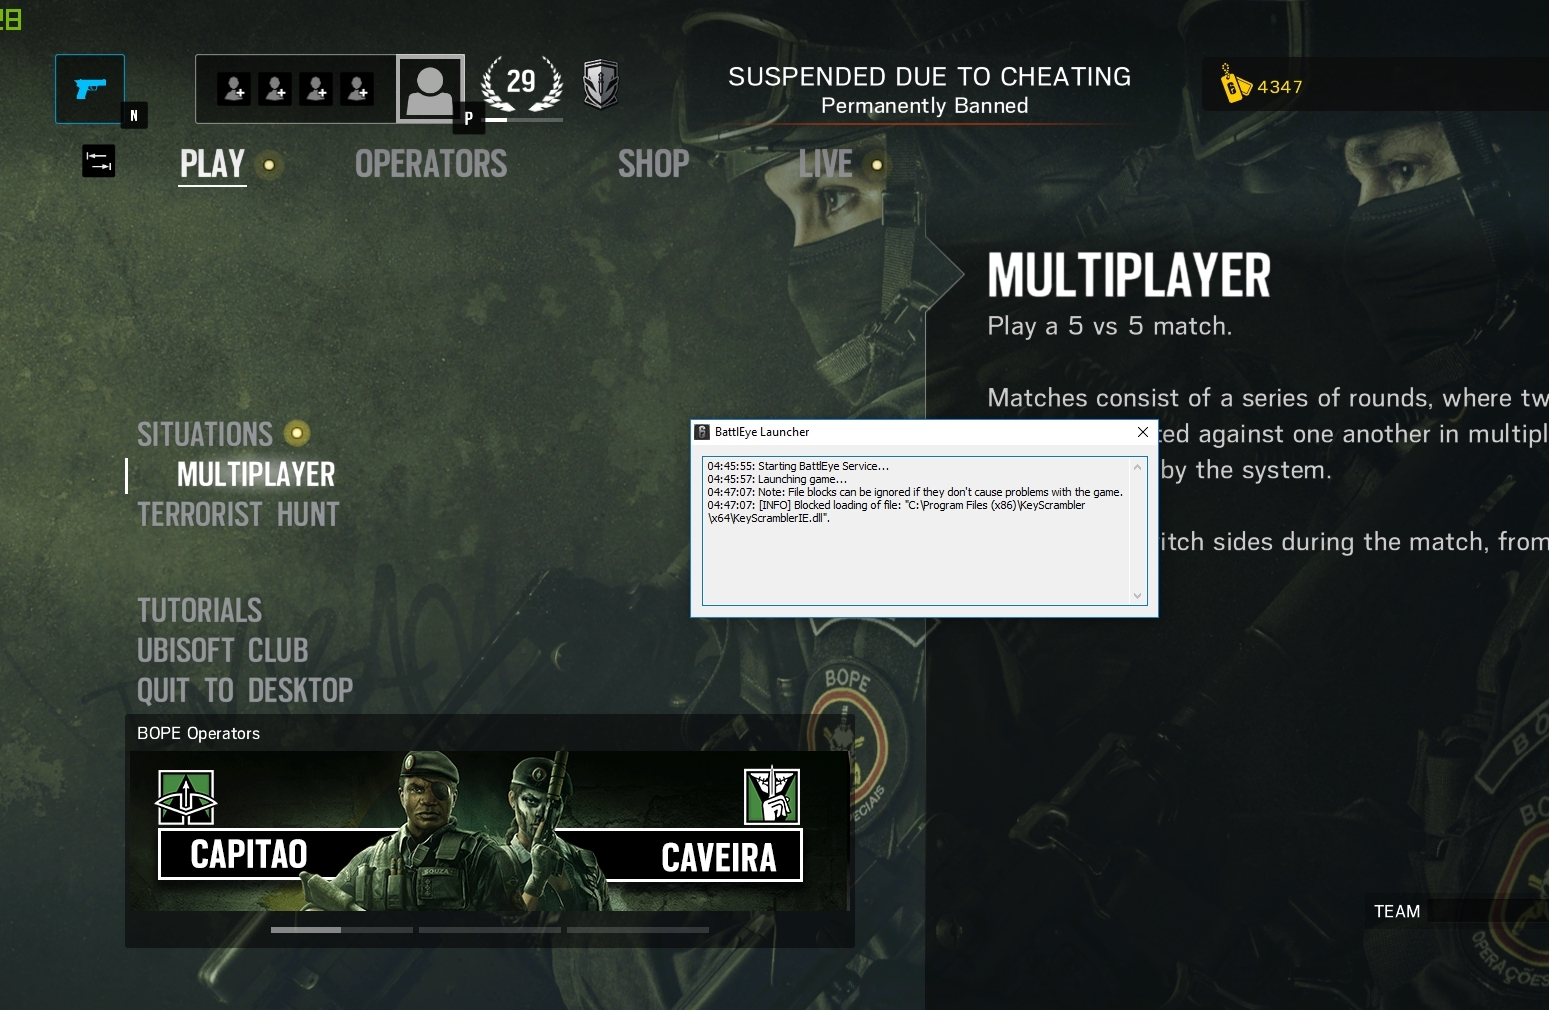 how to get unbanned from battleye